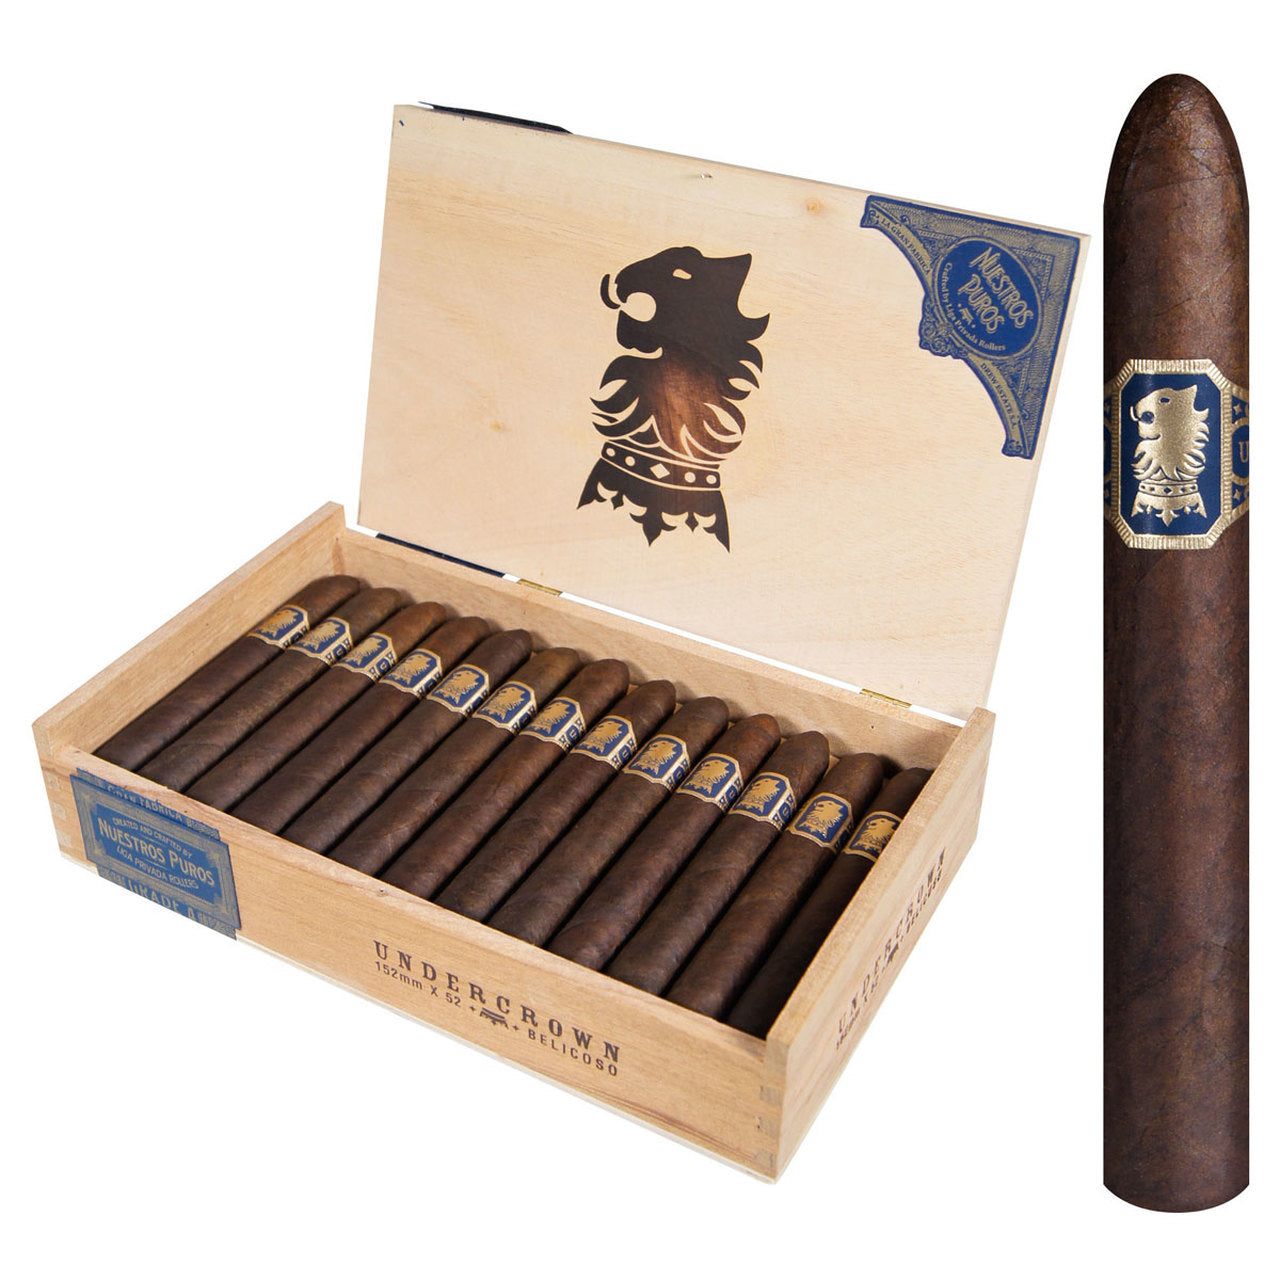 UNDERCROWN LIGA PRIVADA AND SHADE (Box and Pack Cigars)